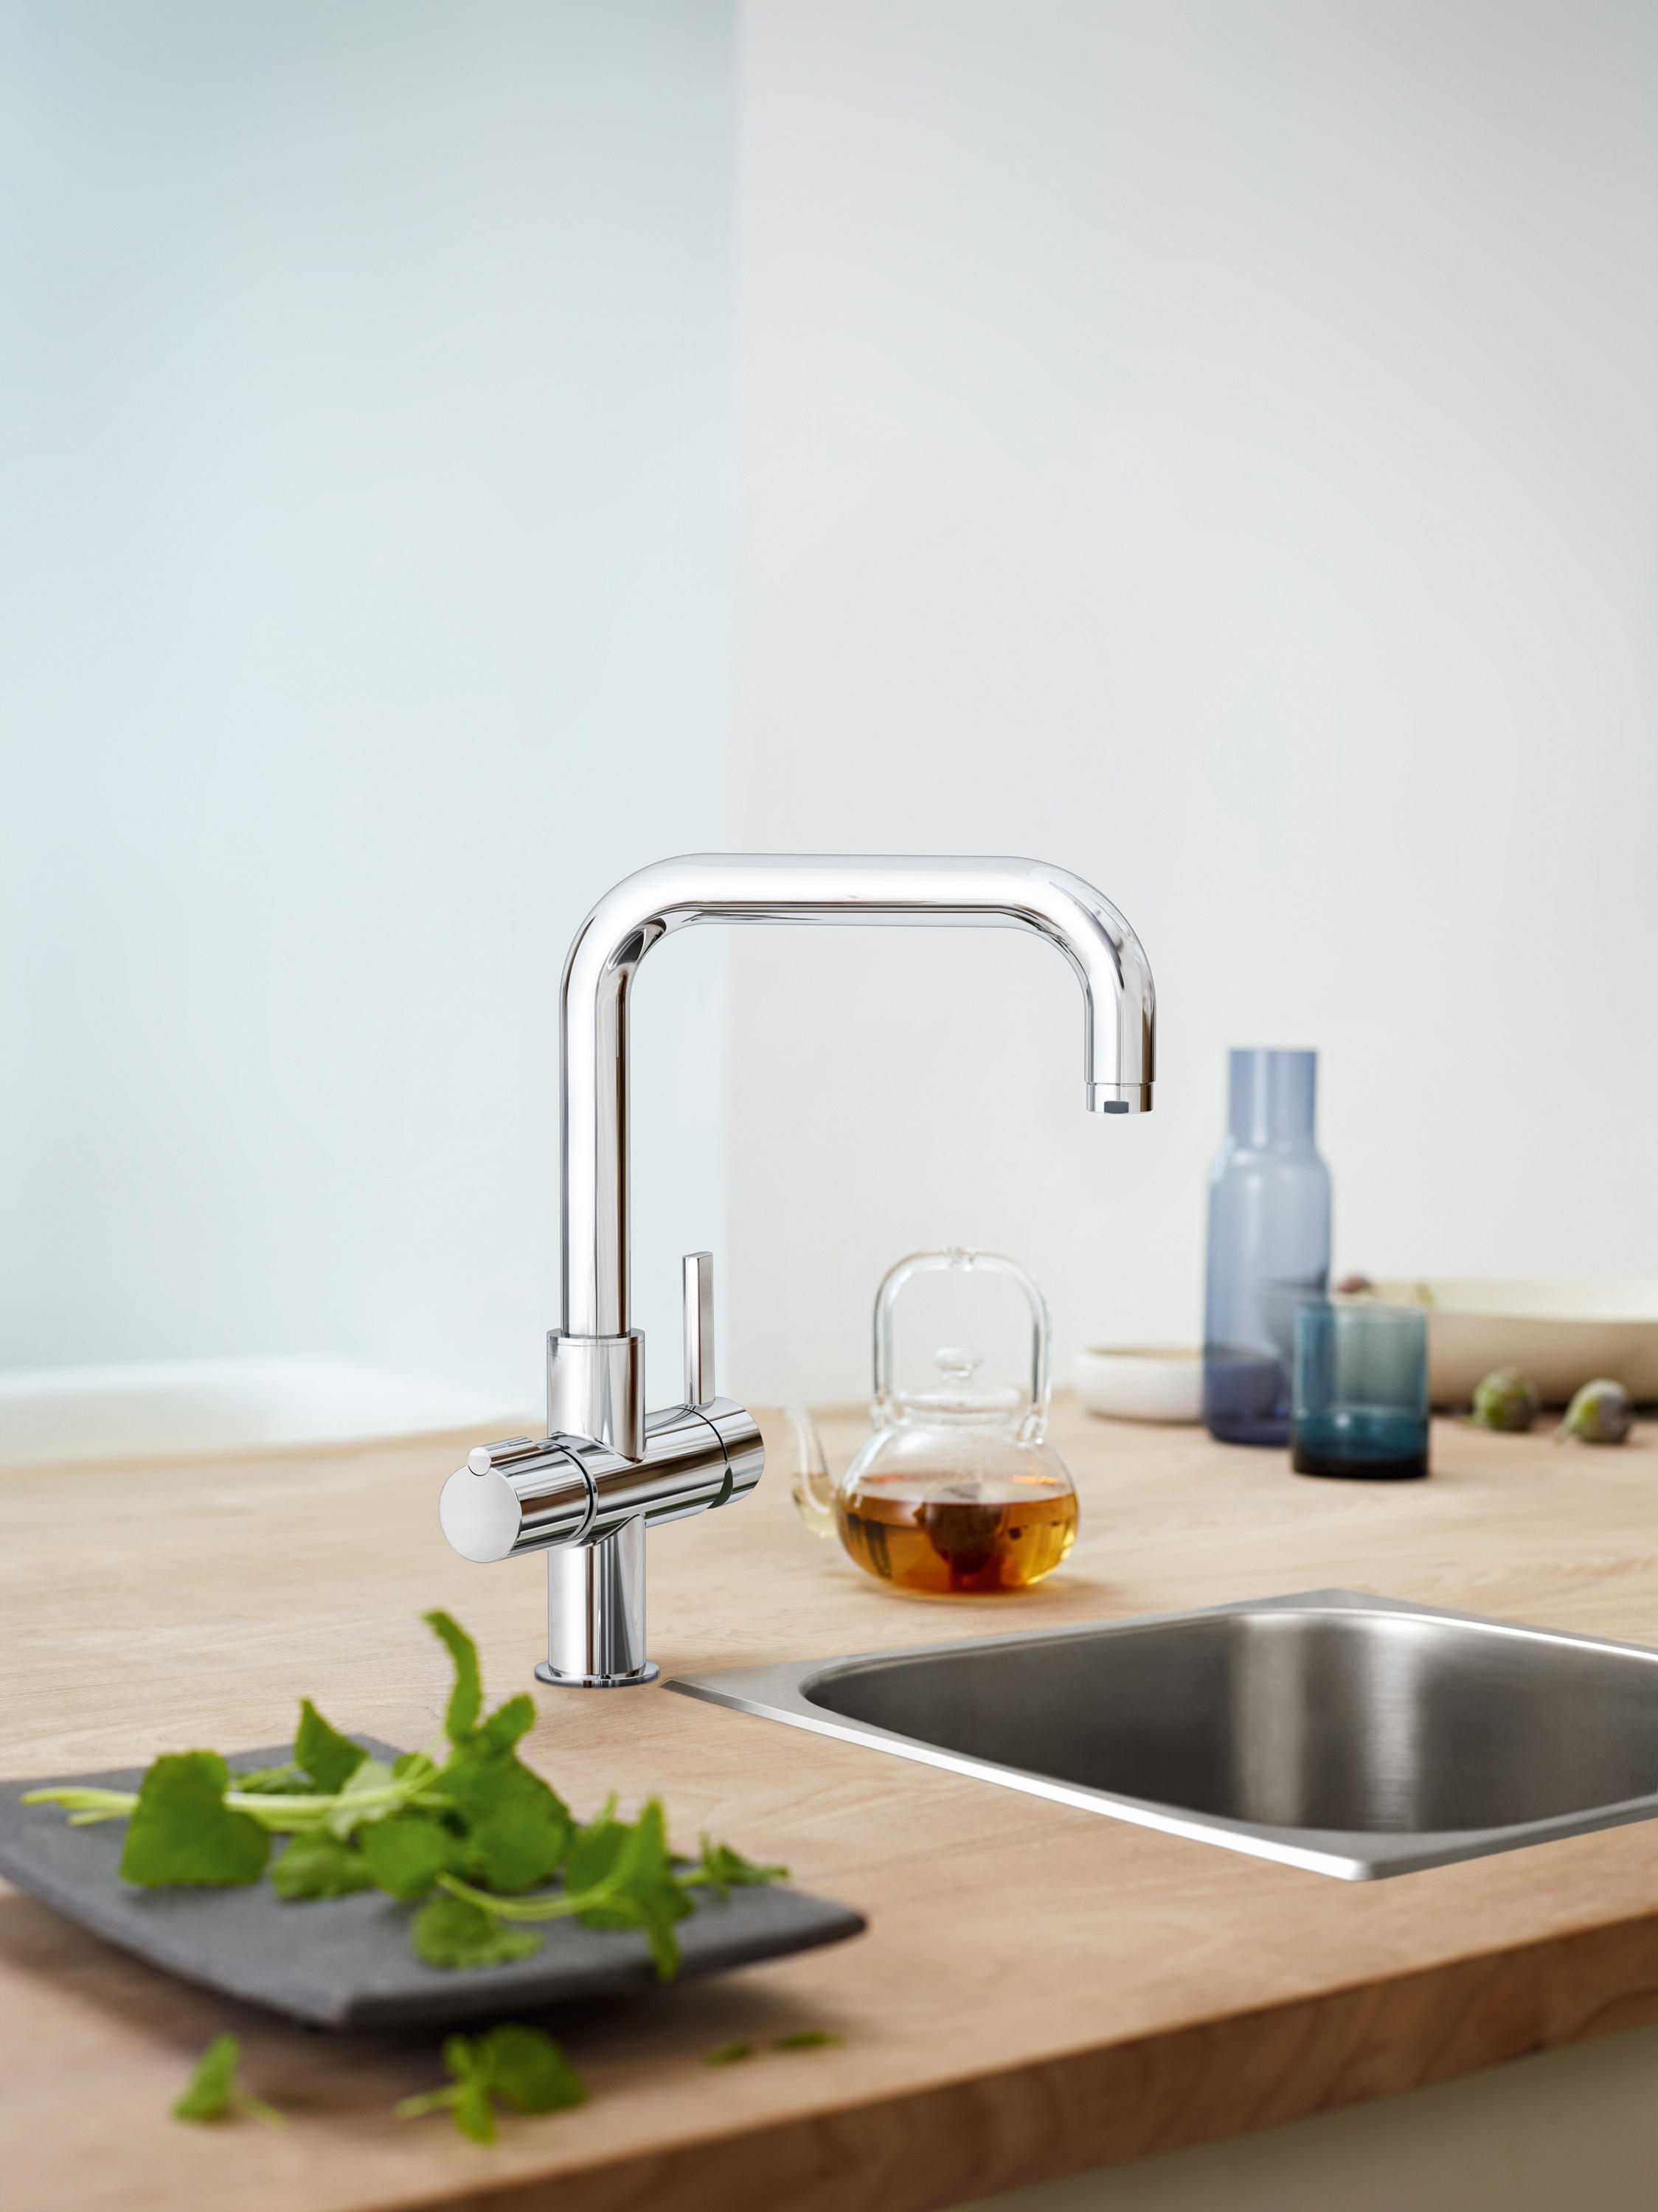 grohe red duo faucet and combi boiler kitchen taps from. Black Bedroom Furniture Sets. Home Design Ideas